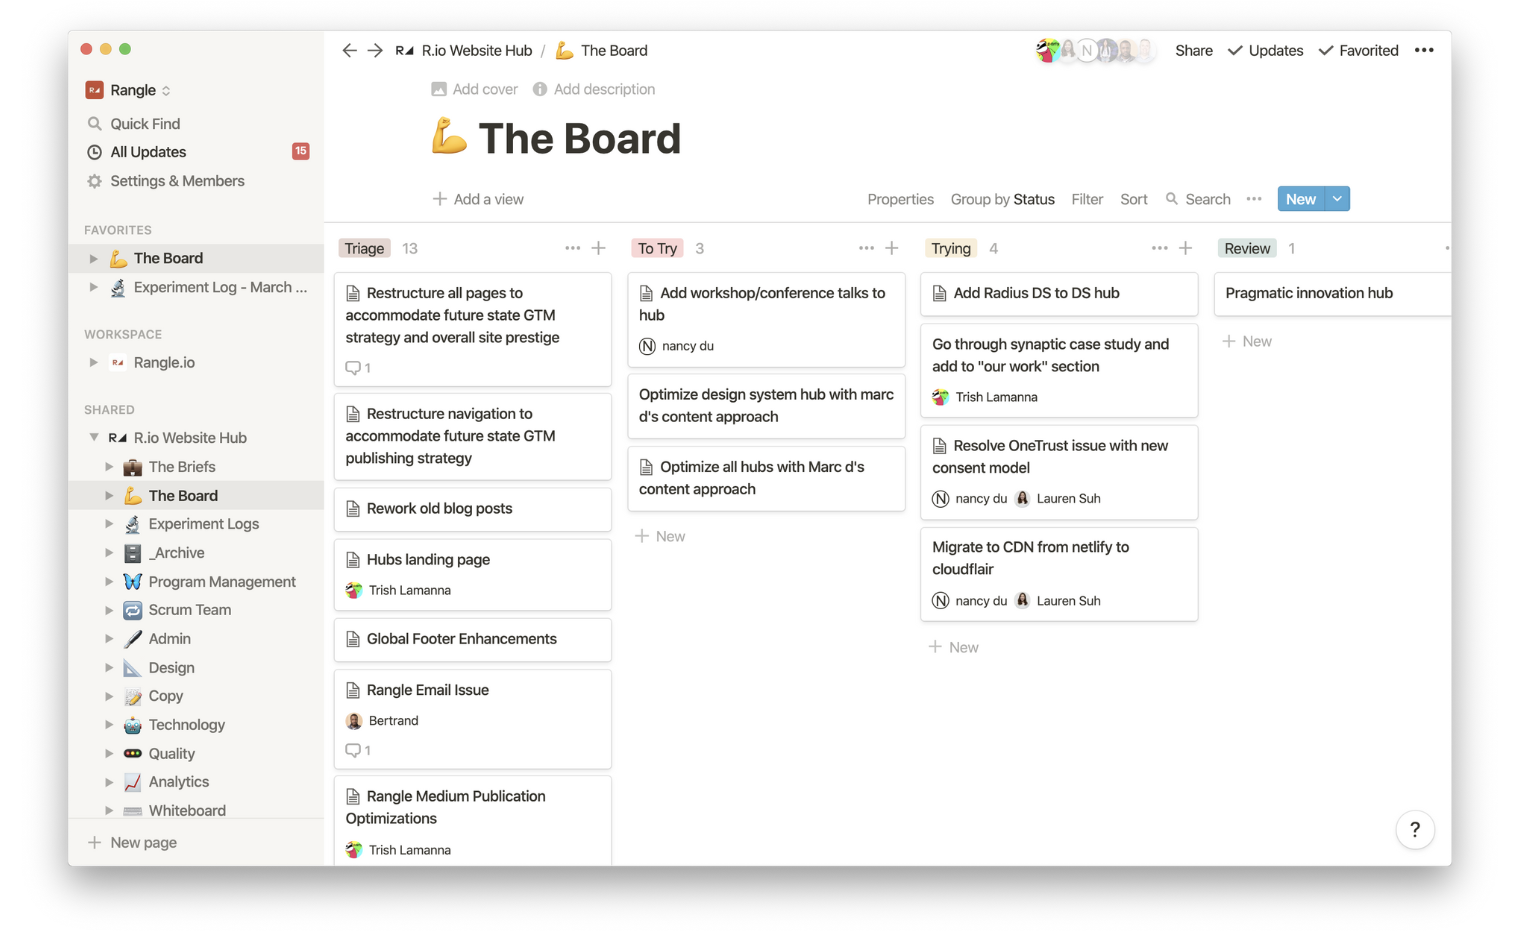 Weekly review of tasks in a Notion board